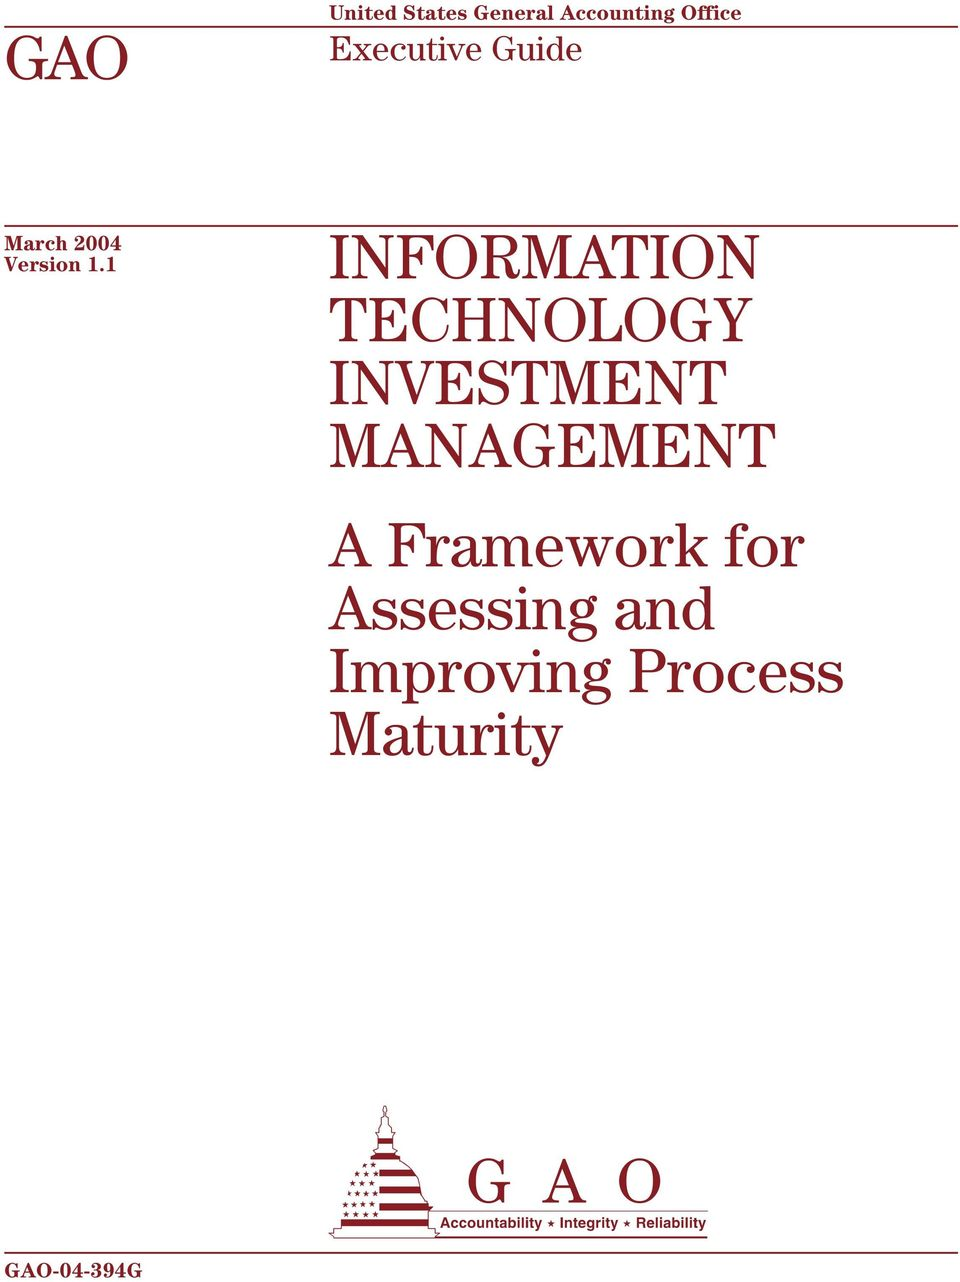 1 INFORMATION TECHNOLOGY INVESTMENT MANAGEMENT A